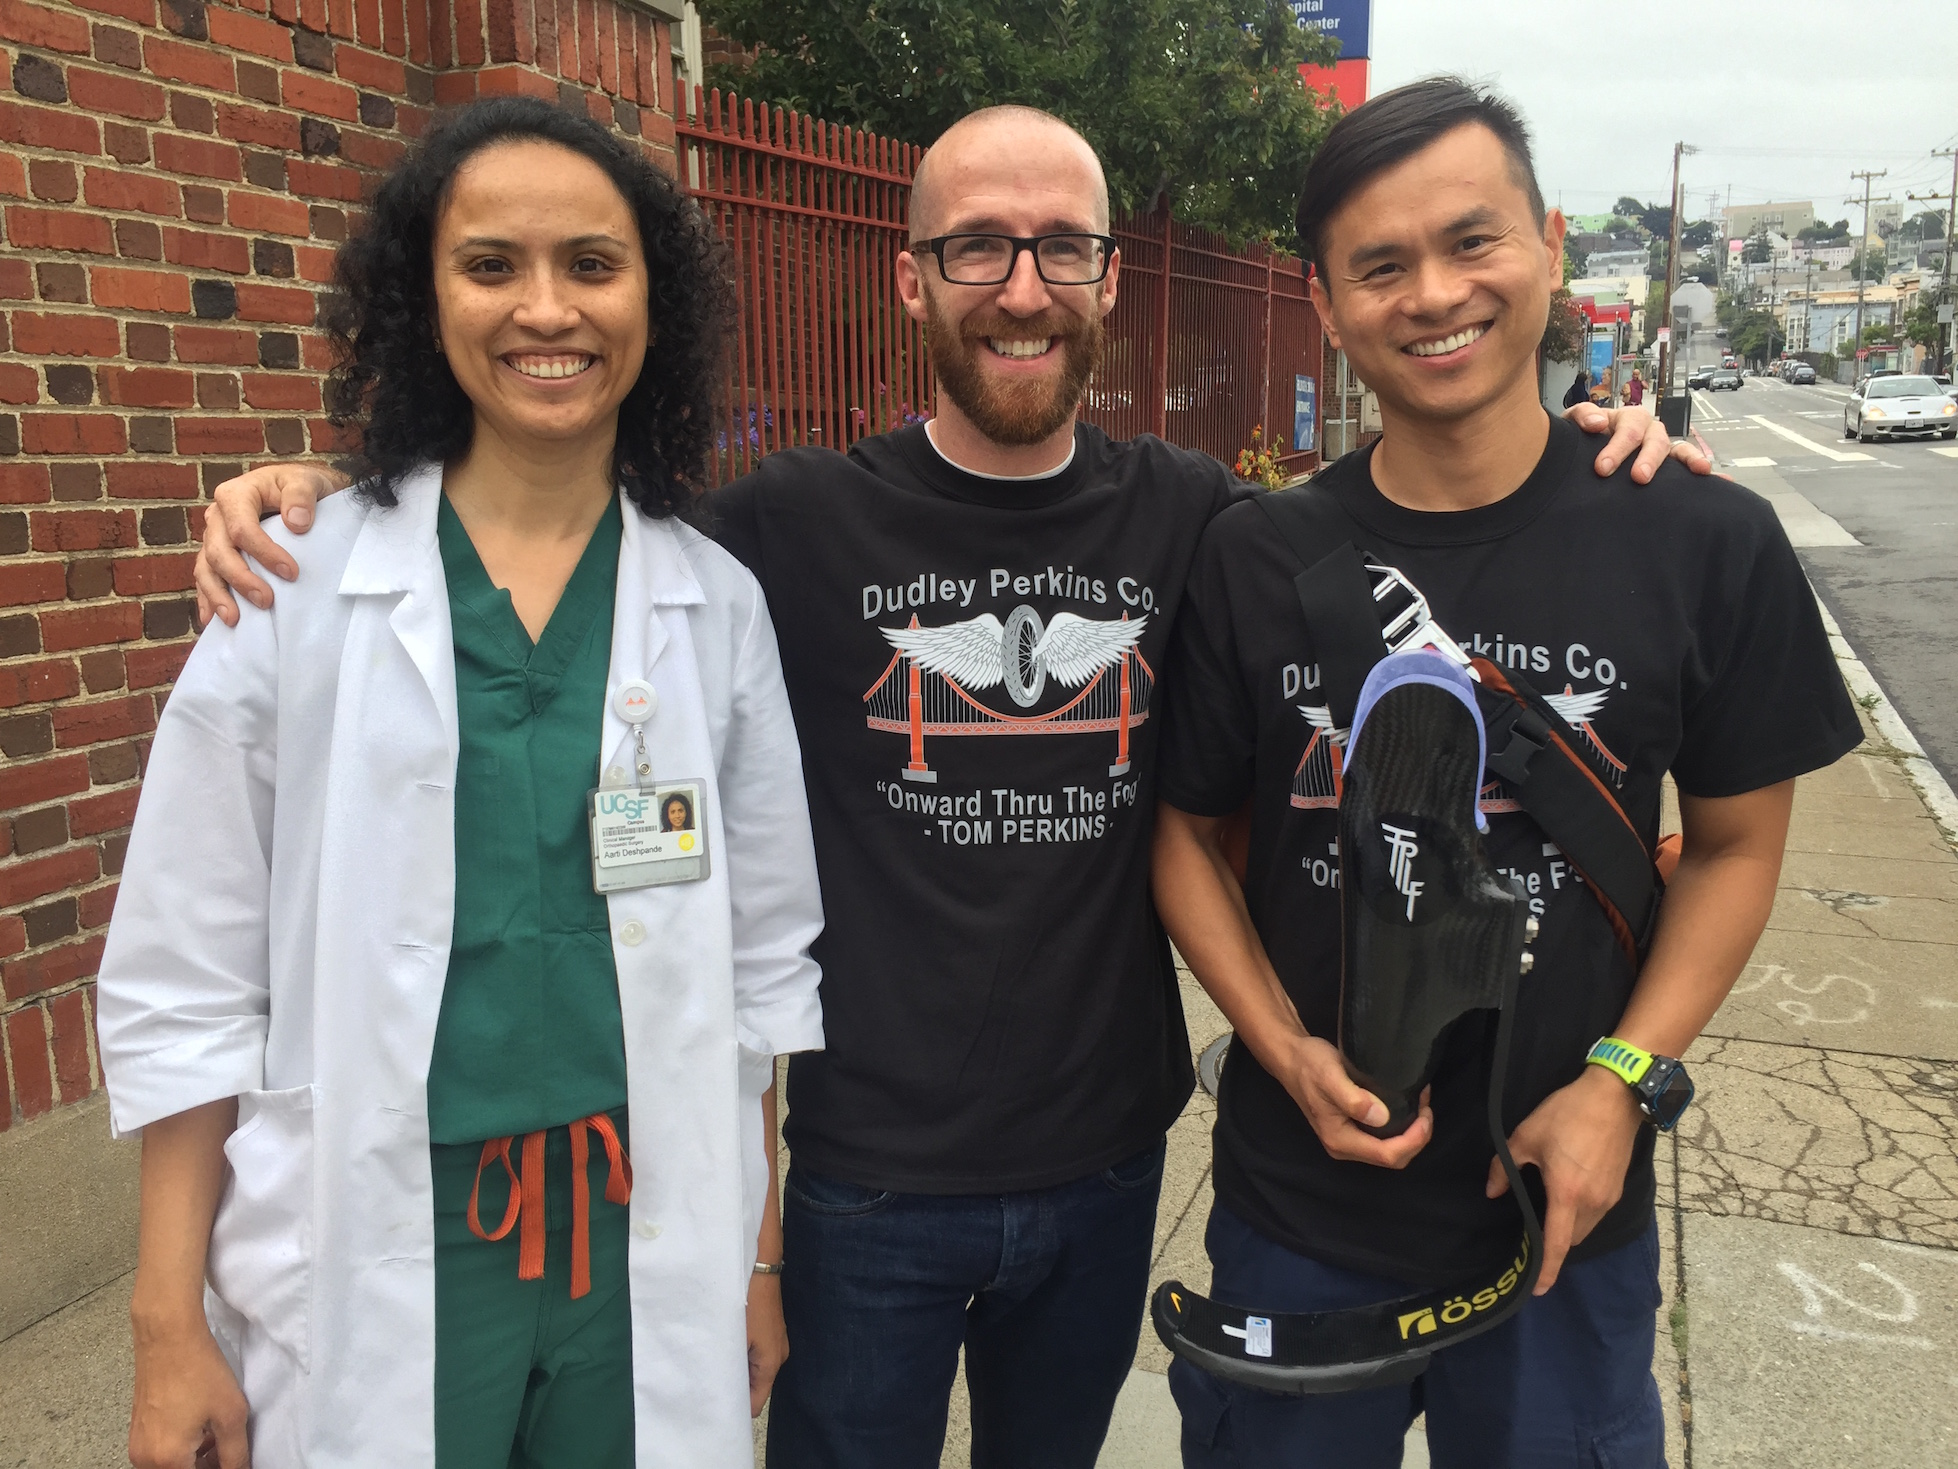 2017 TPLF Grant Recipient Kim Yu, with prosthetist Aarti Deshpande & Christopher Perkins